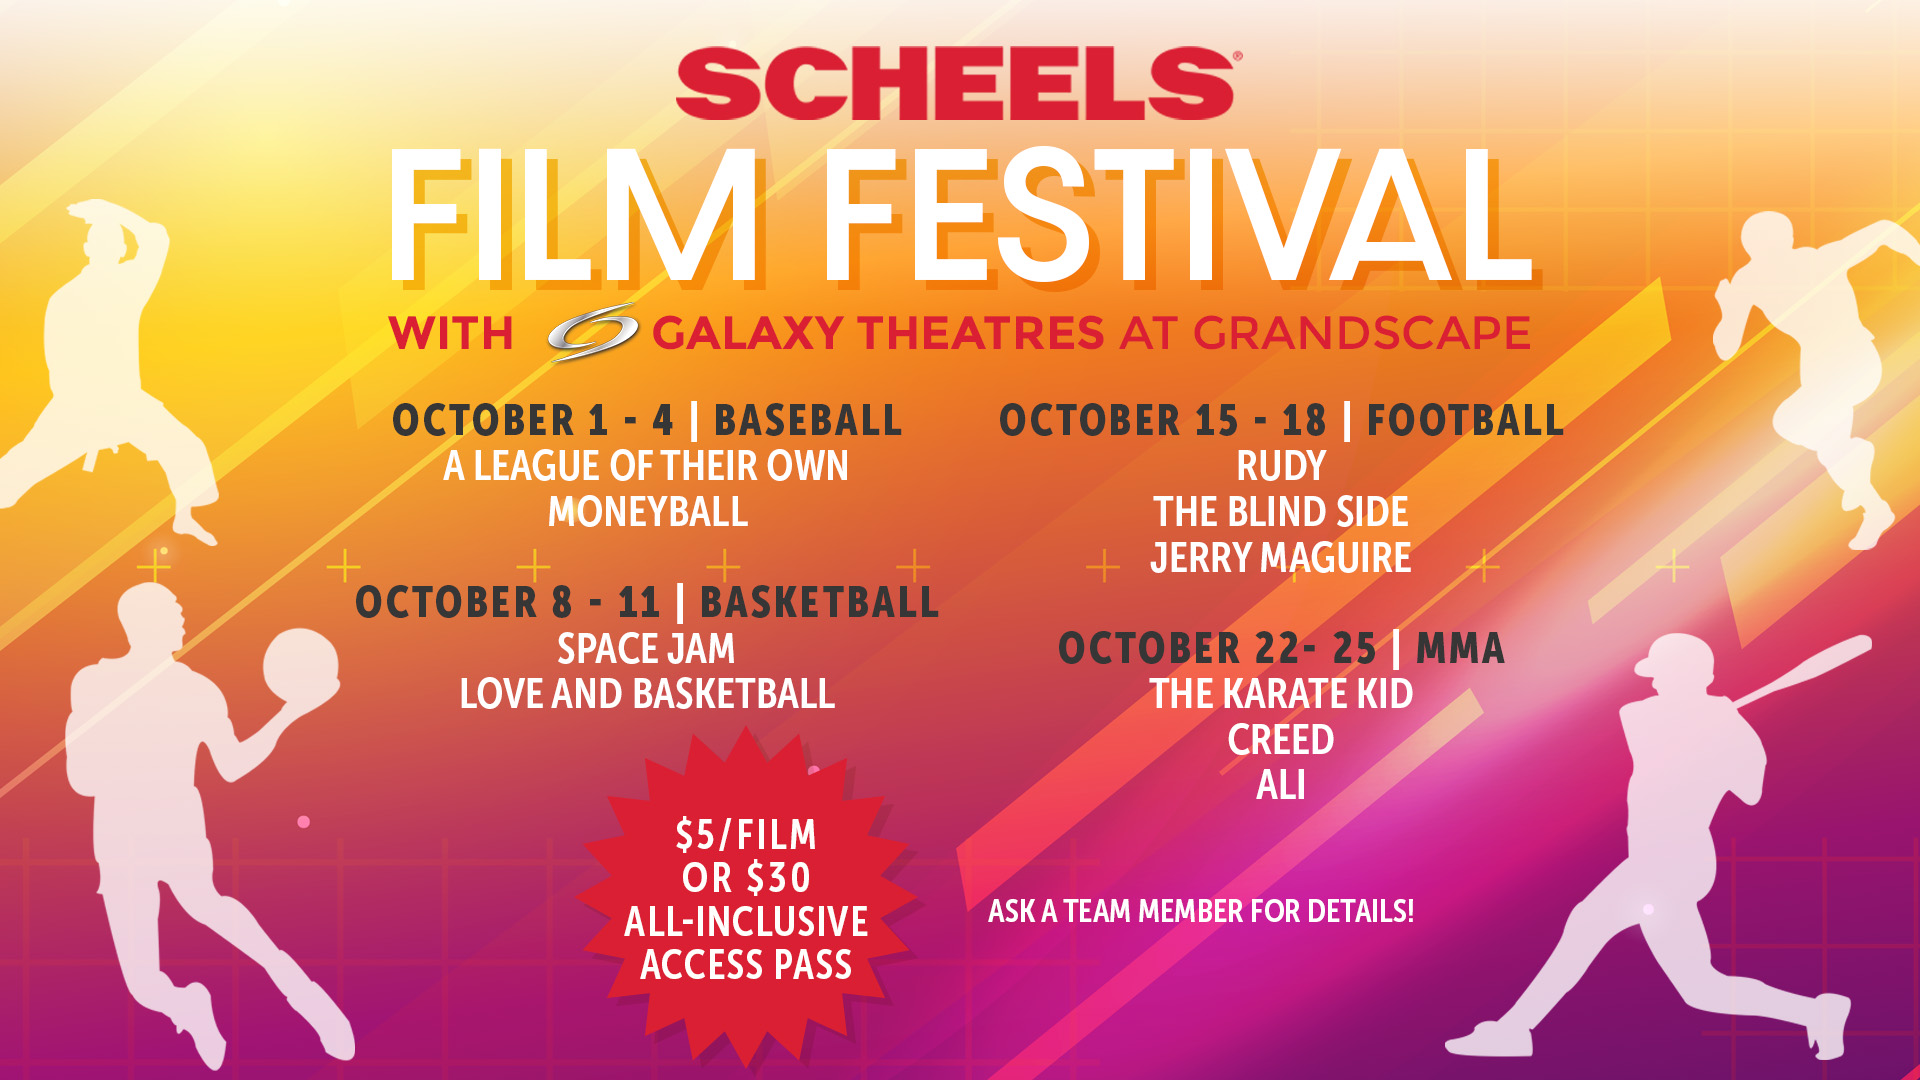 Scheels Film Festival with Galaxy Theatres at Grandscape image